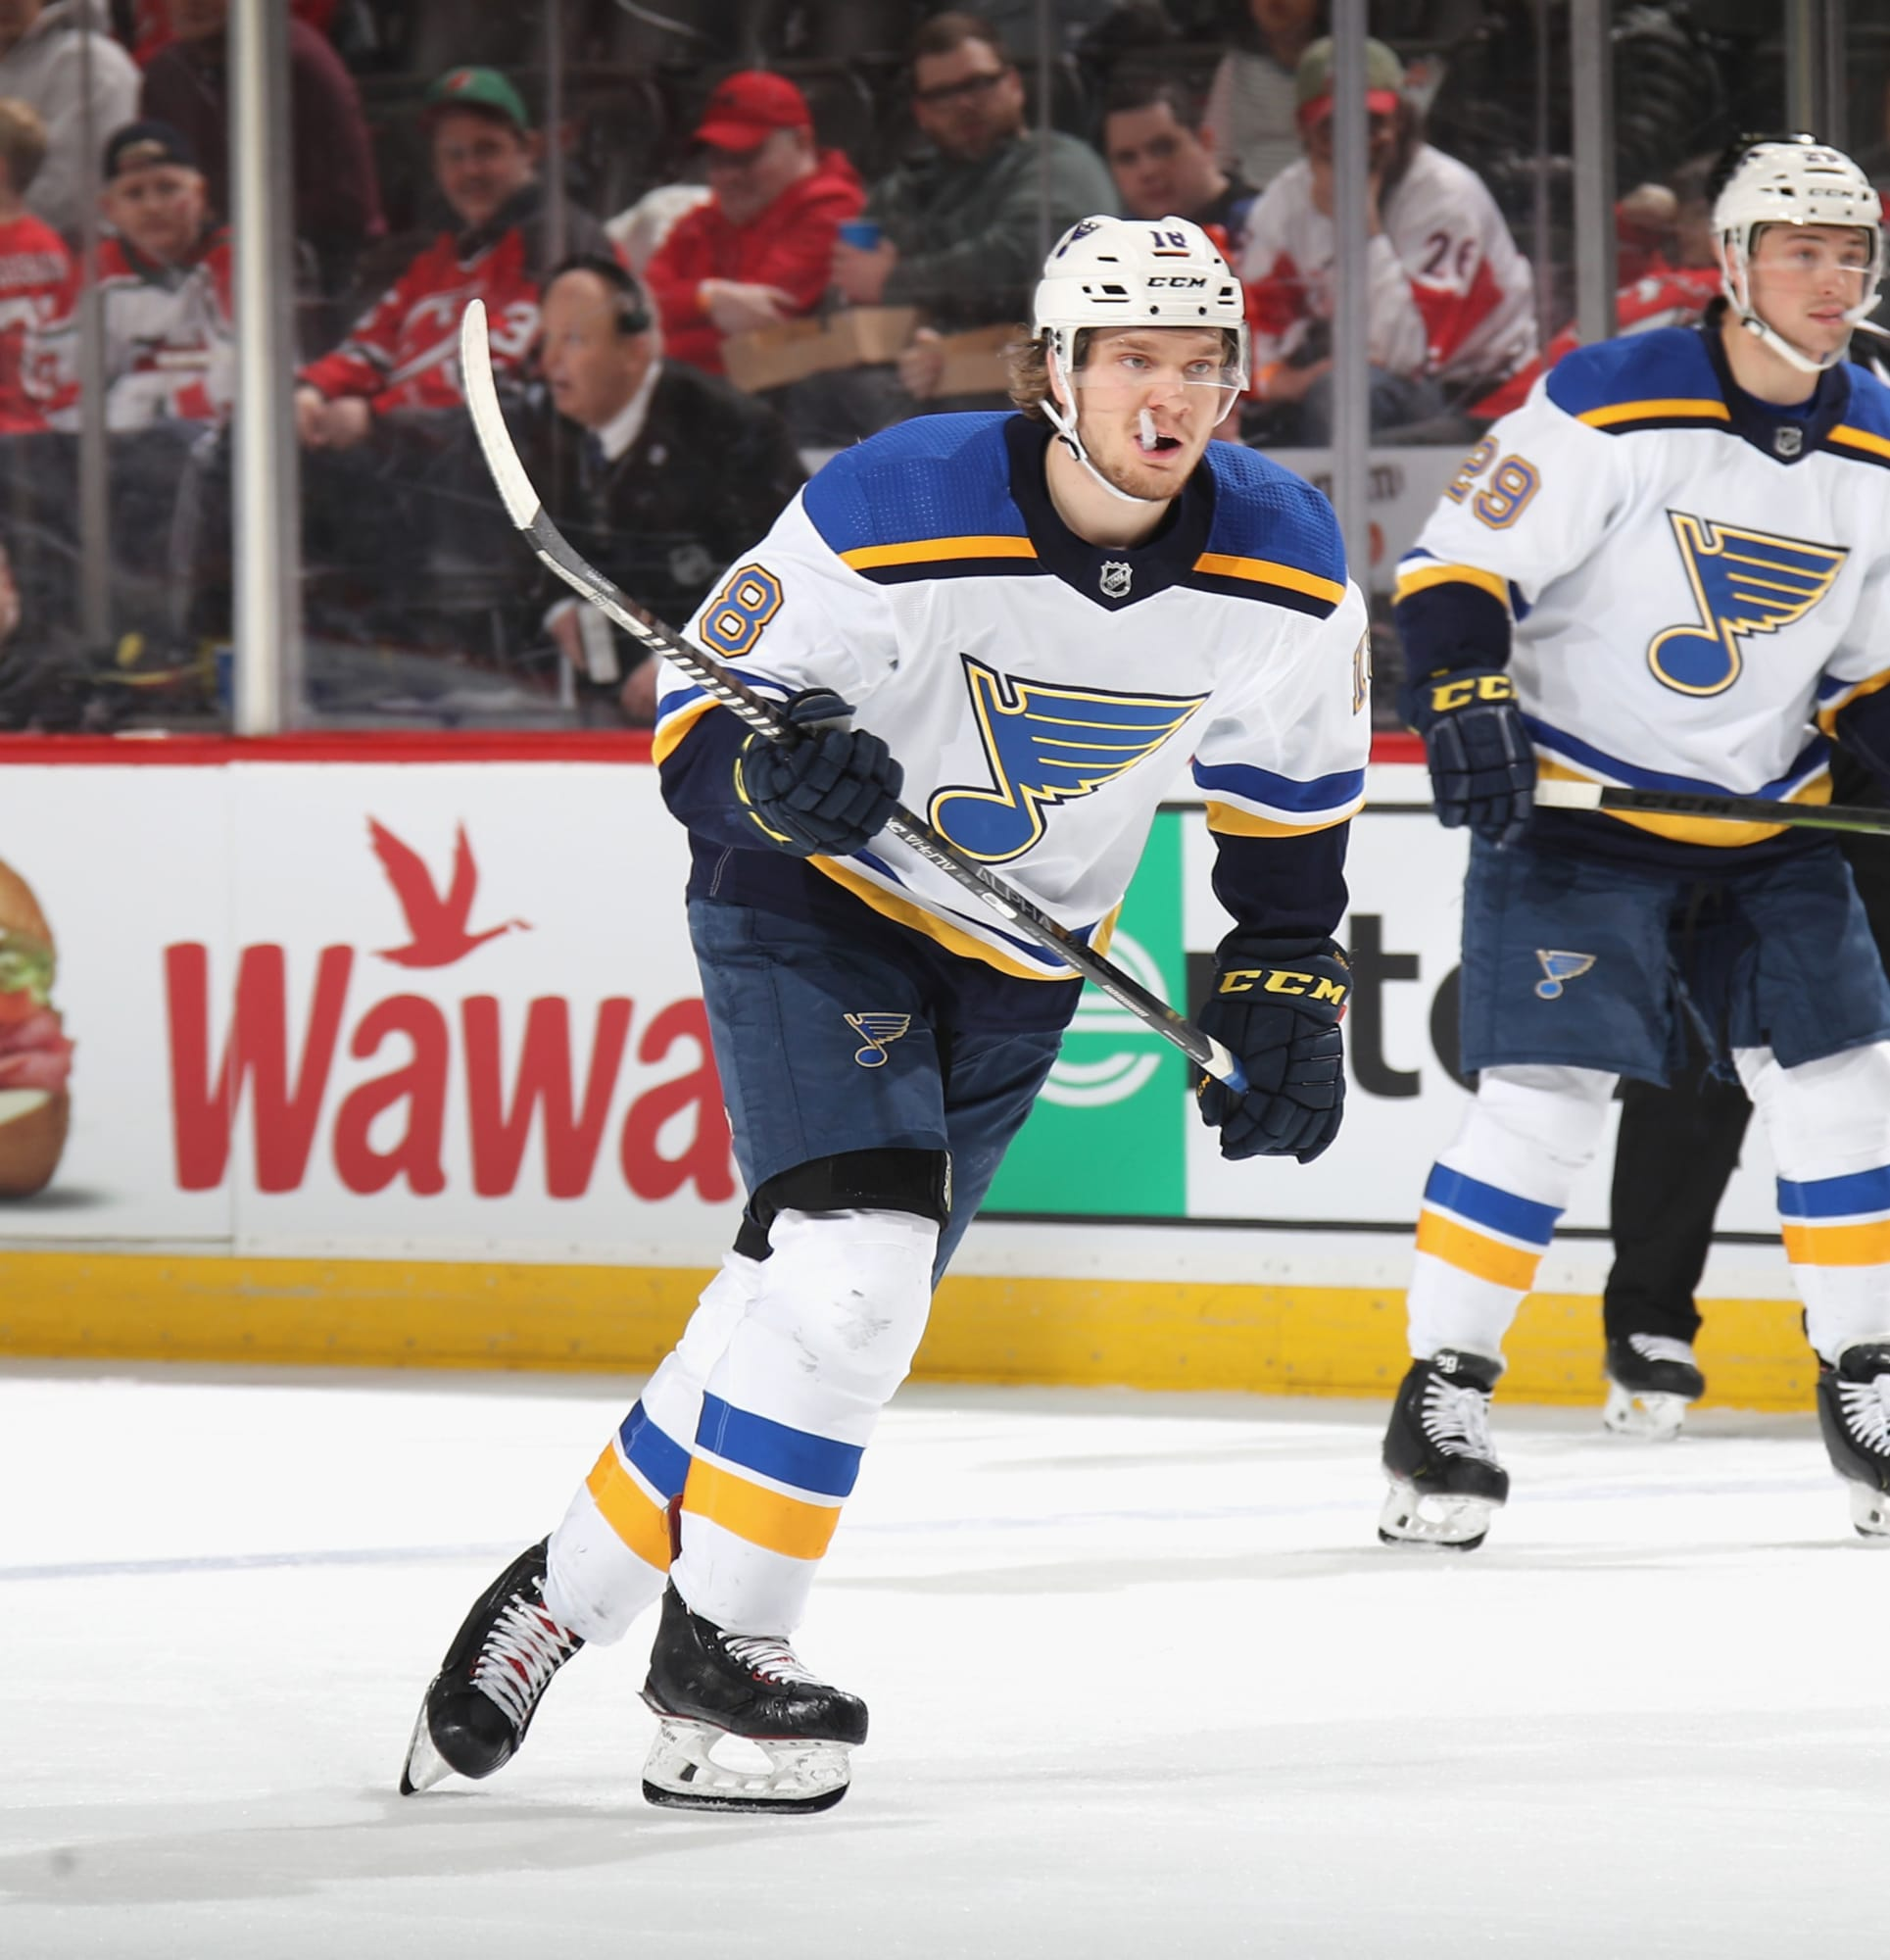 ICYMI St. Louis Blues Winning Championships Even In Pandemic